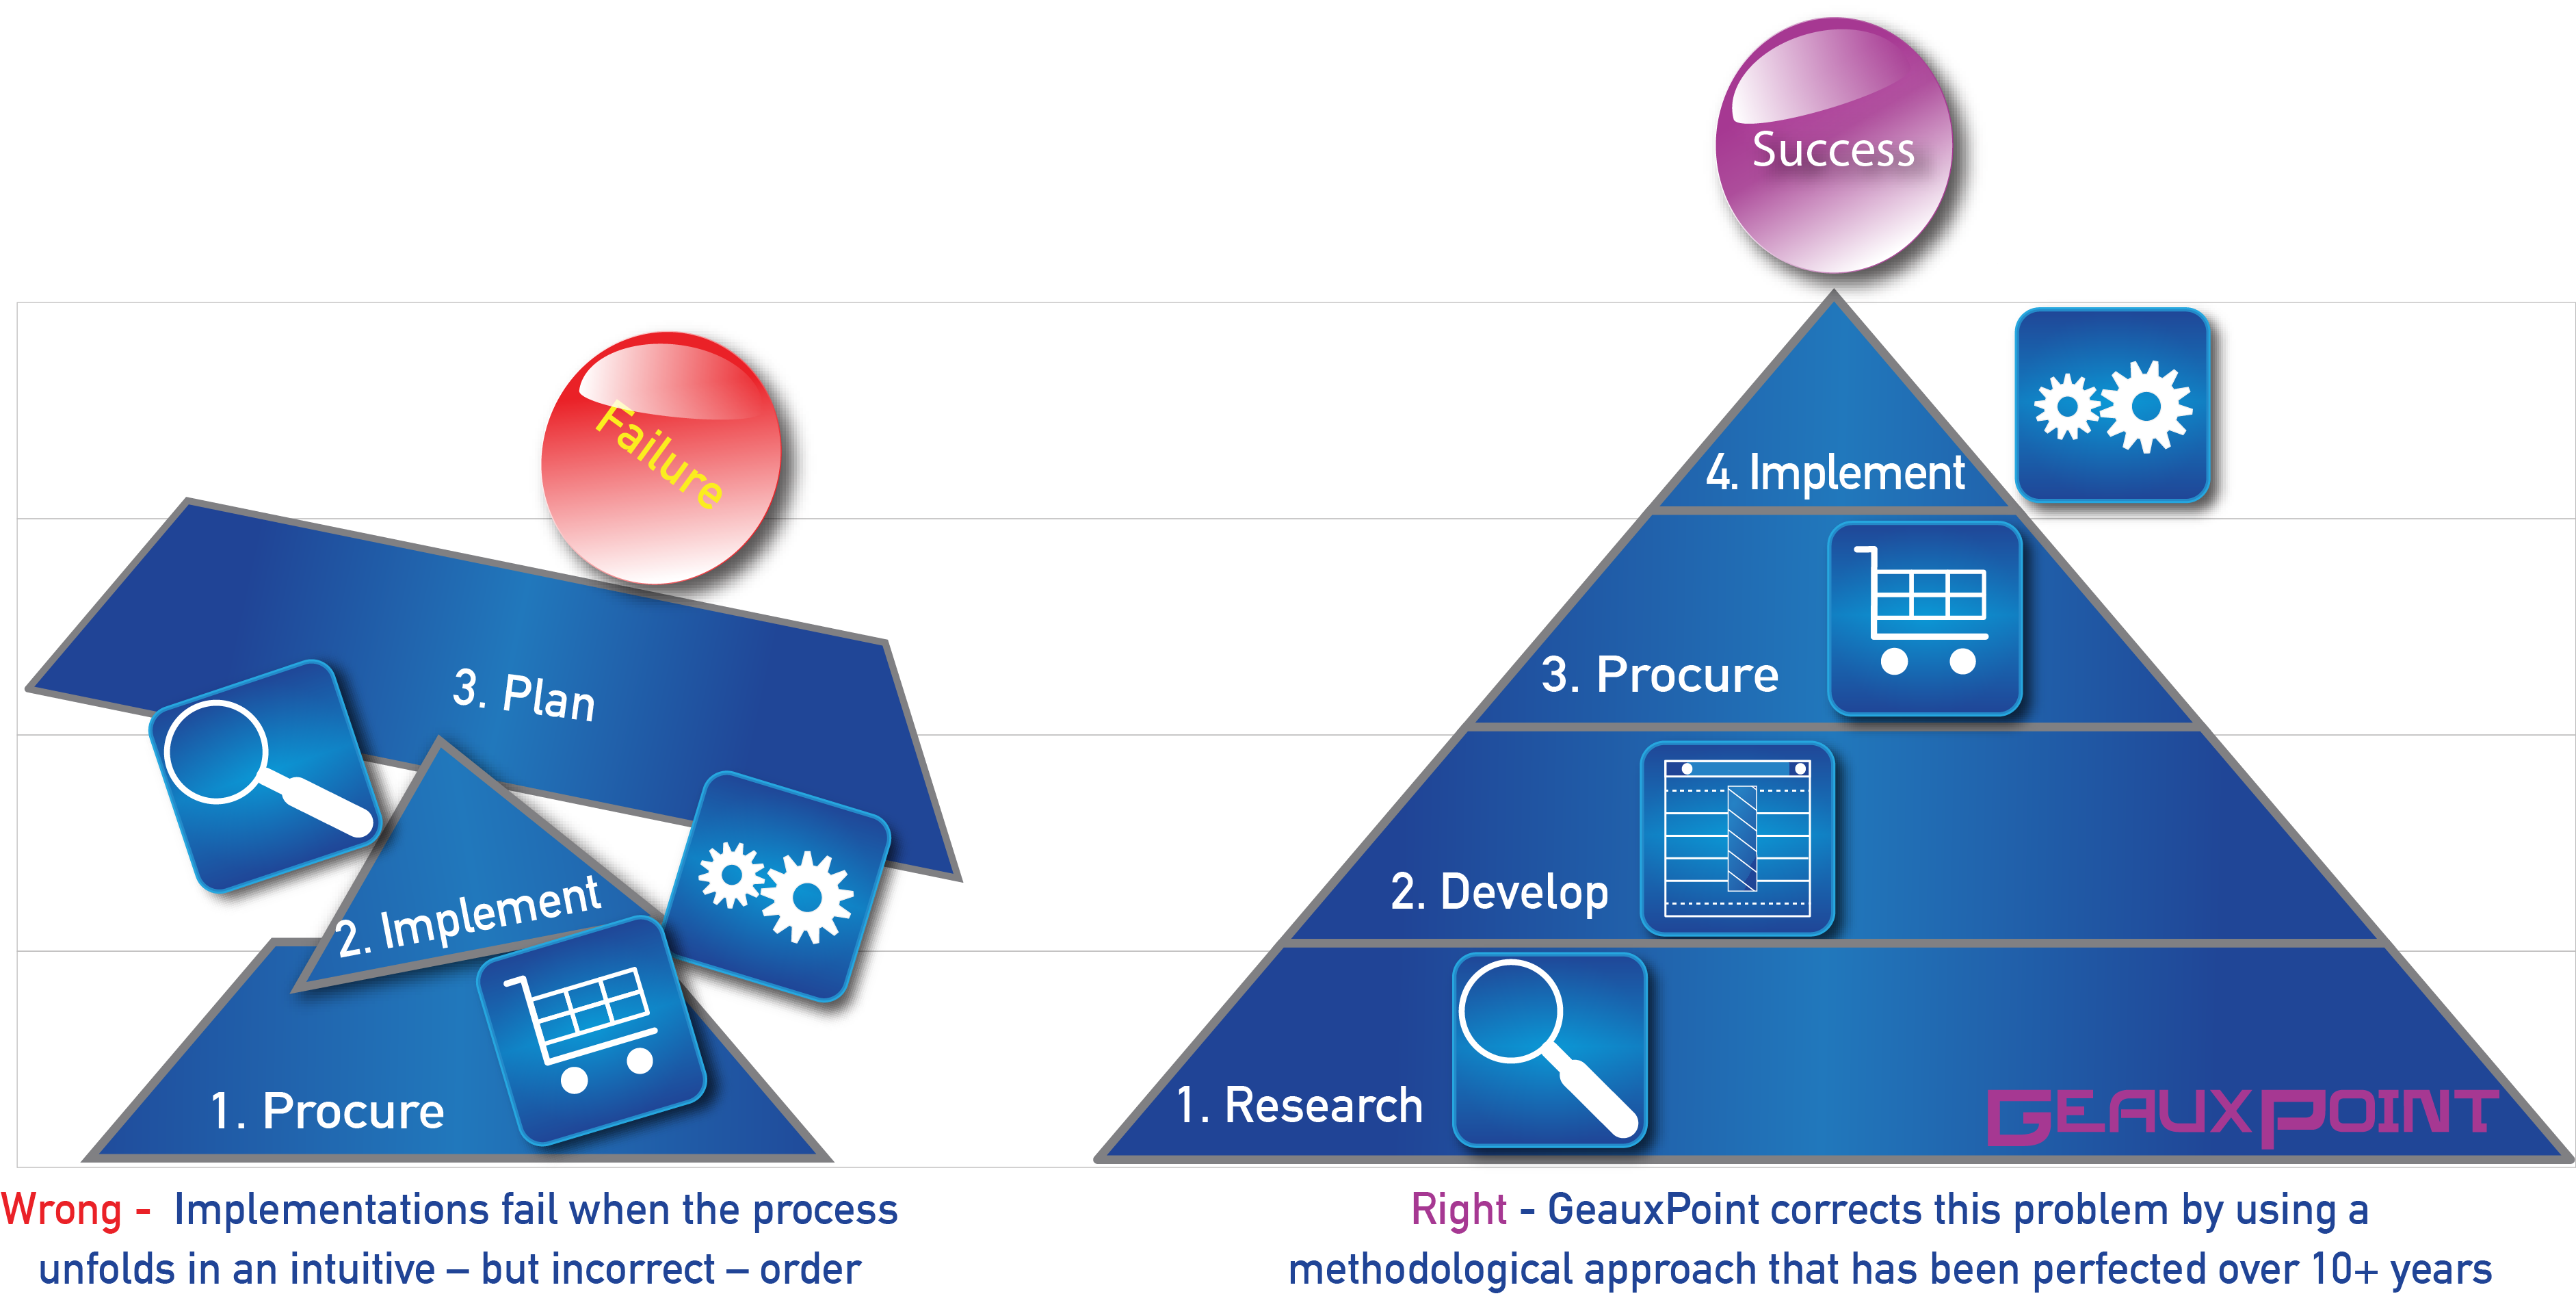 One crumbling triangle showing the steps of a failed Salesforce implementation next to another triangle showing the steps of a succesful Salesforce implementation